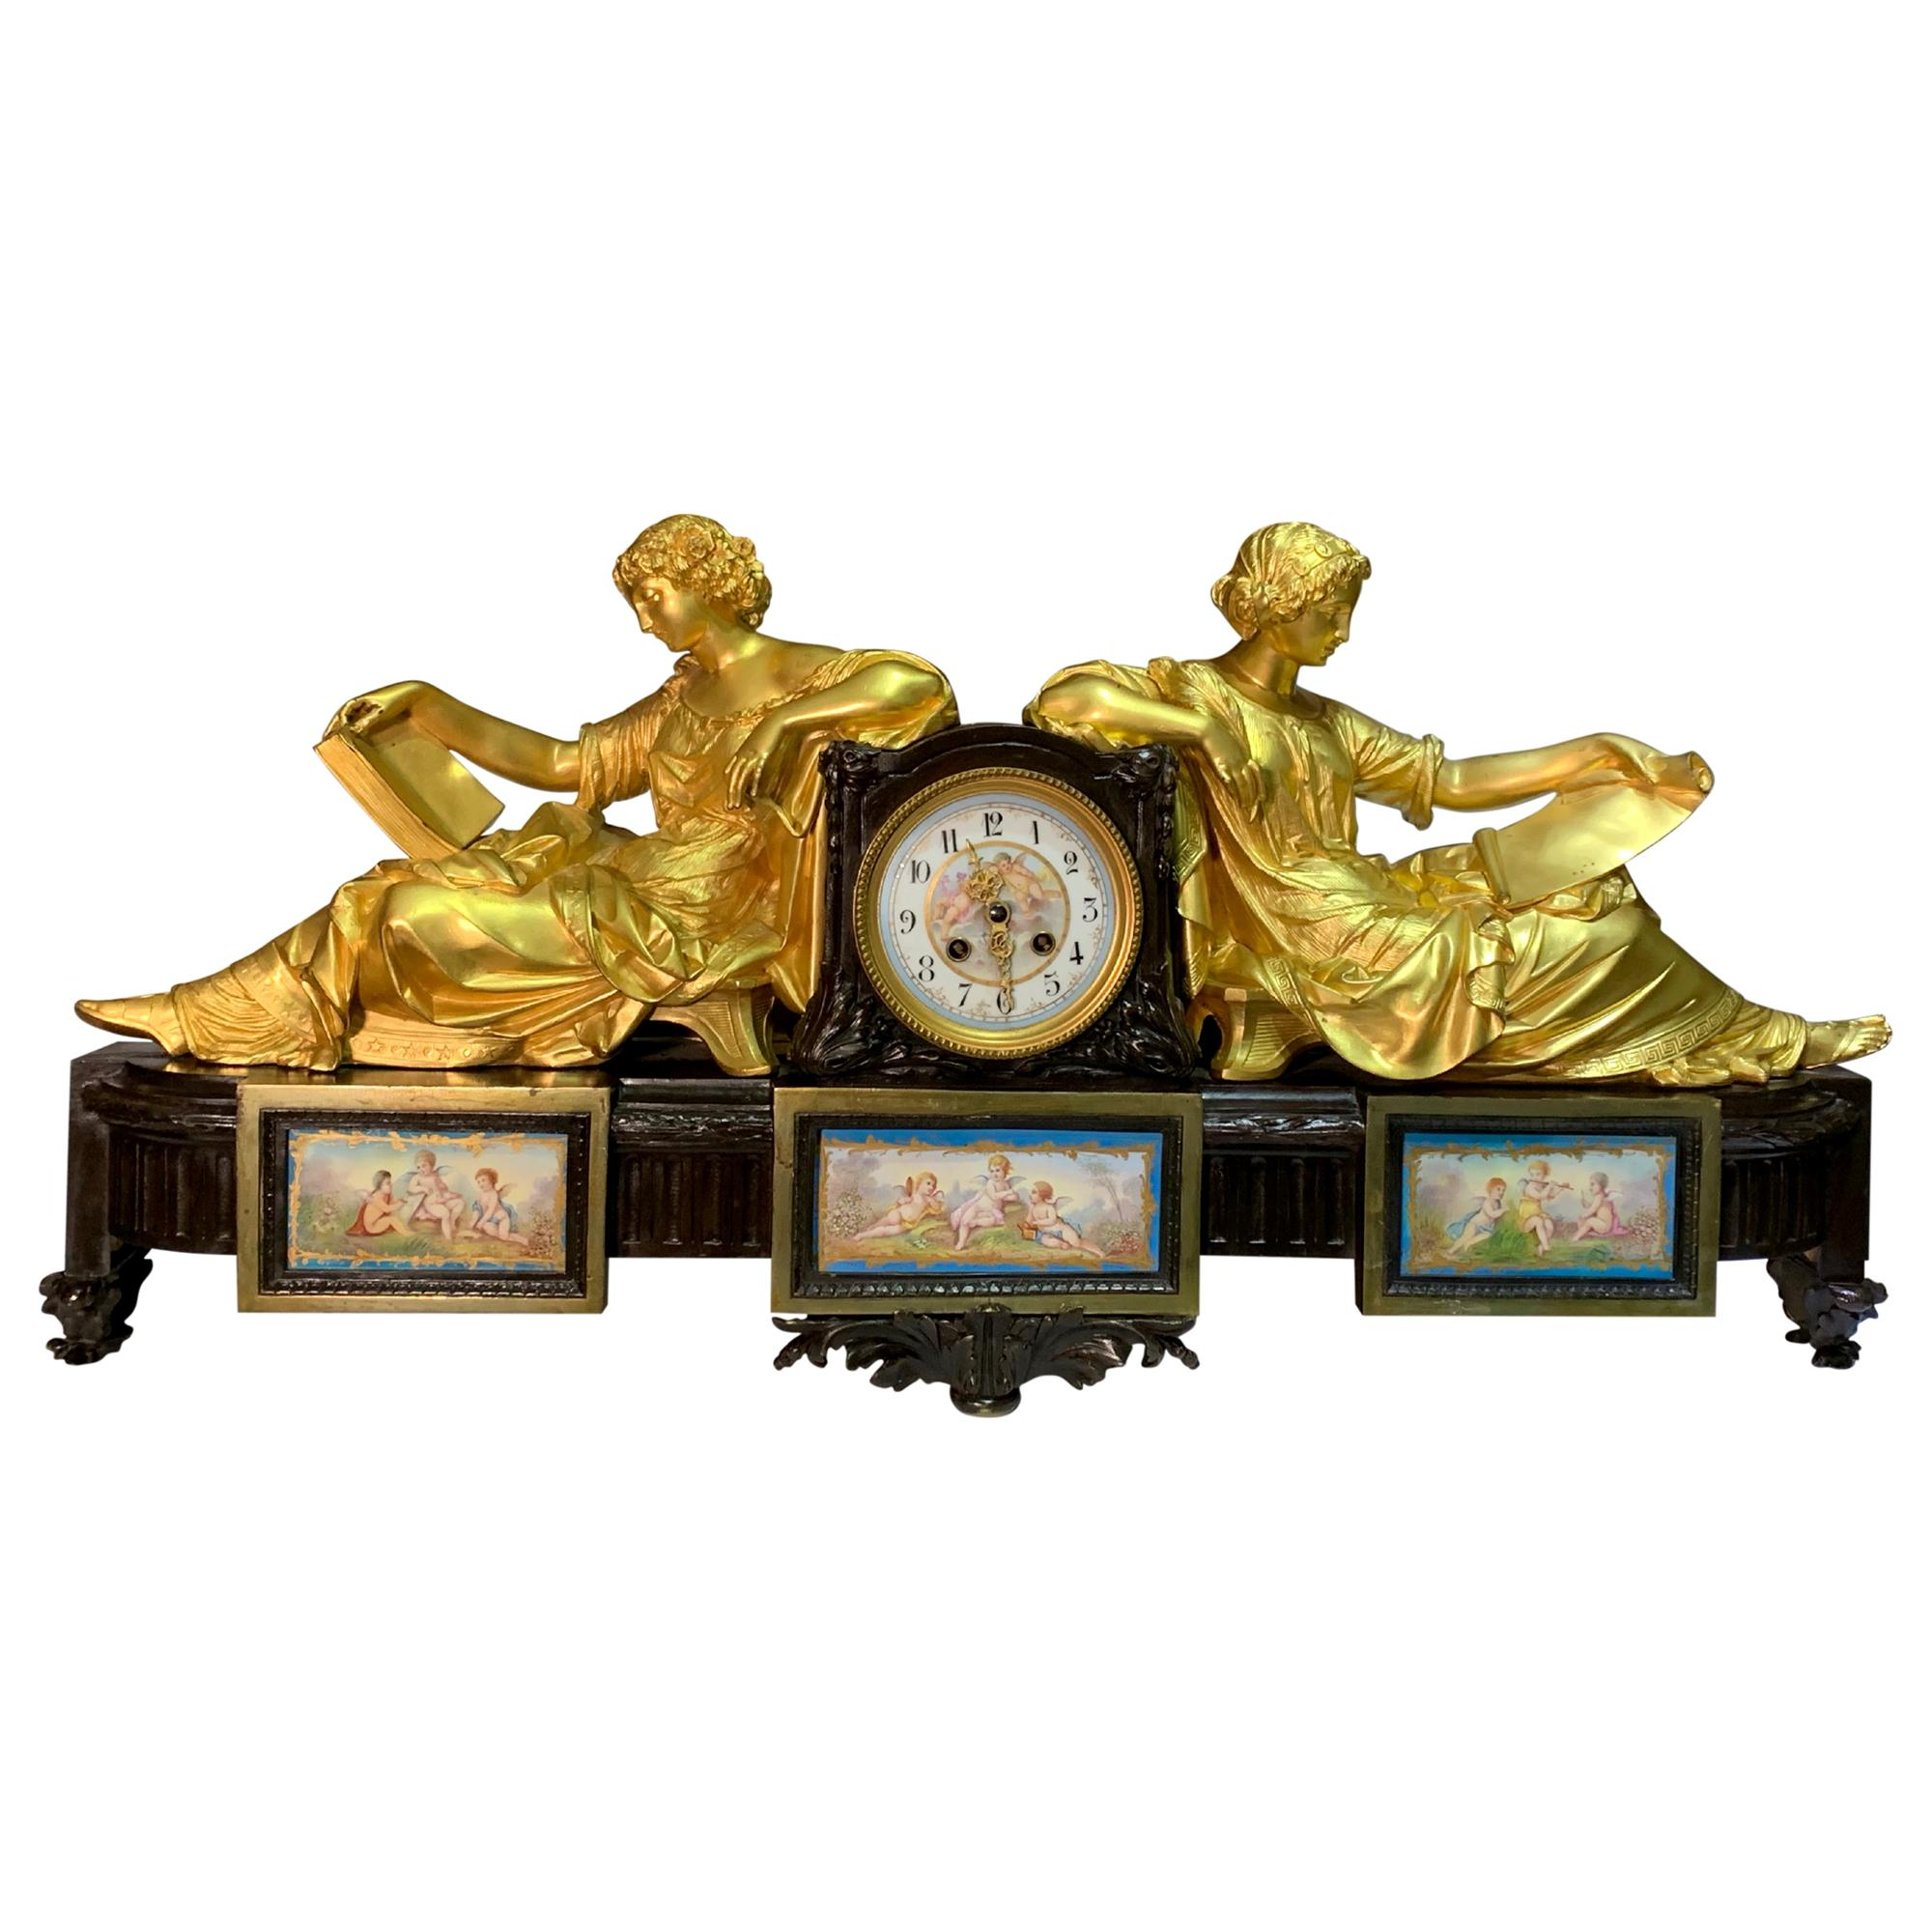 Large 19th Century Sevres Style Porcelain Mounted Ormolu Figural Clock